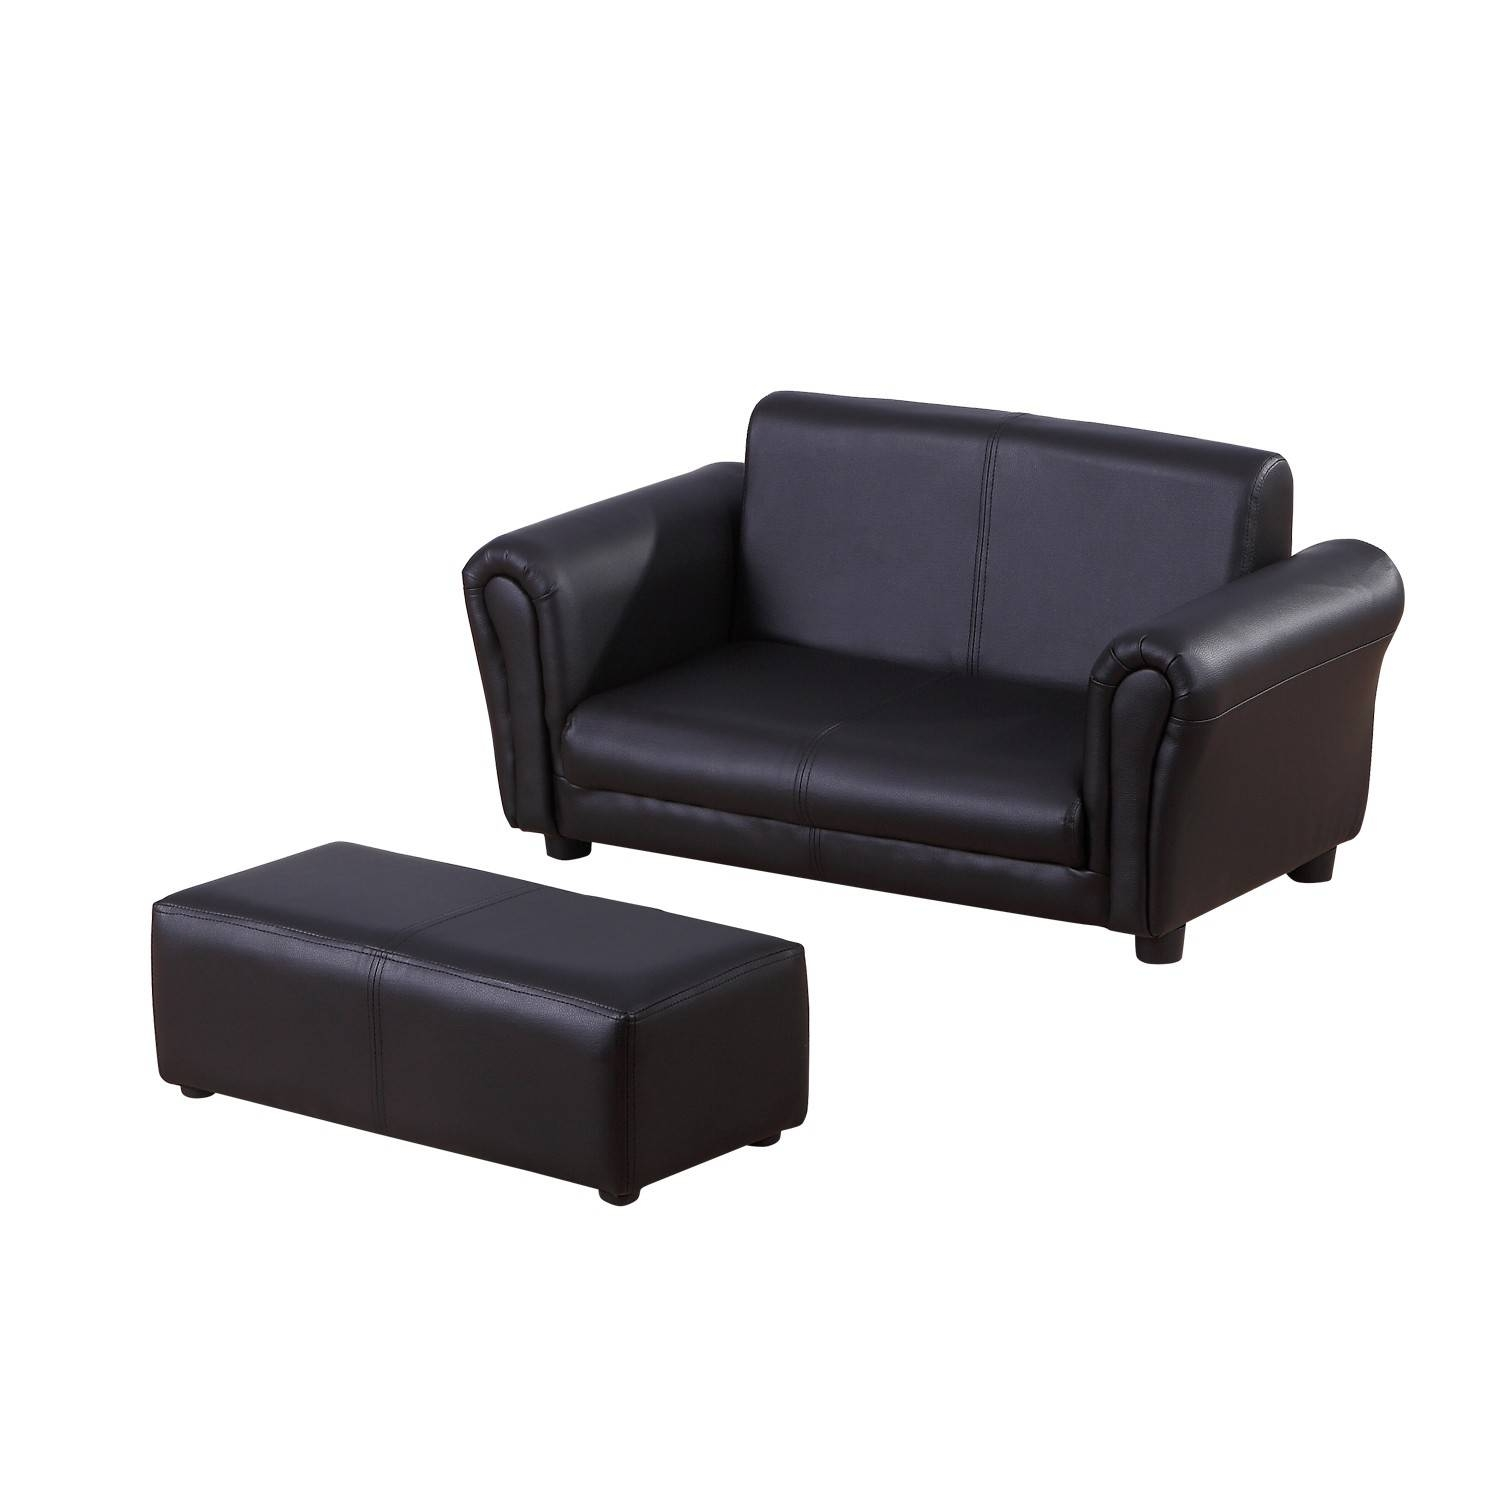 Homcom Children 2-Seater Sofa W/footstool-Black | Aosom.co.uk throughout Black 2 Seater Sofas (Image 14 of 30)